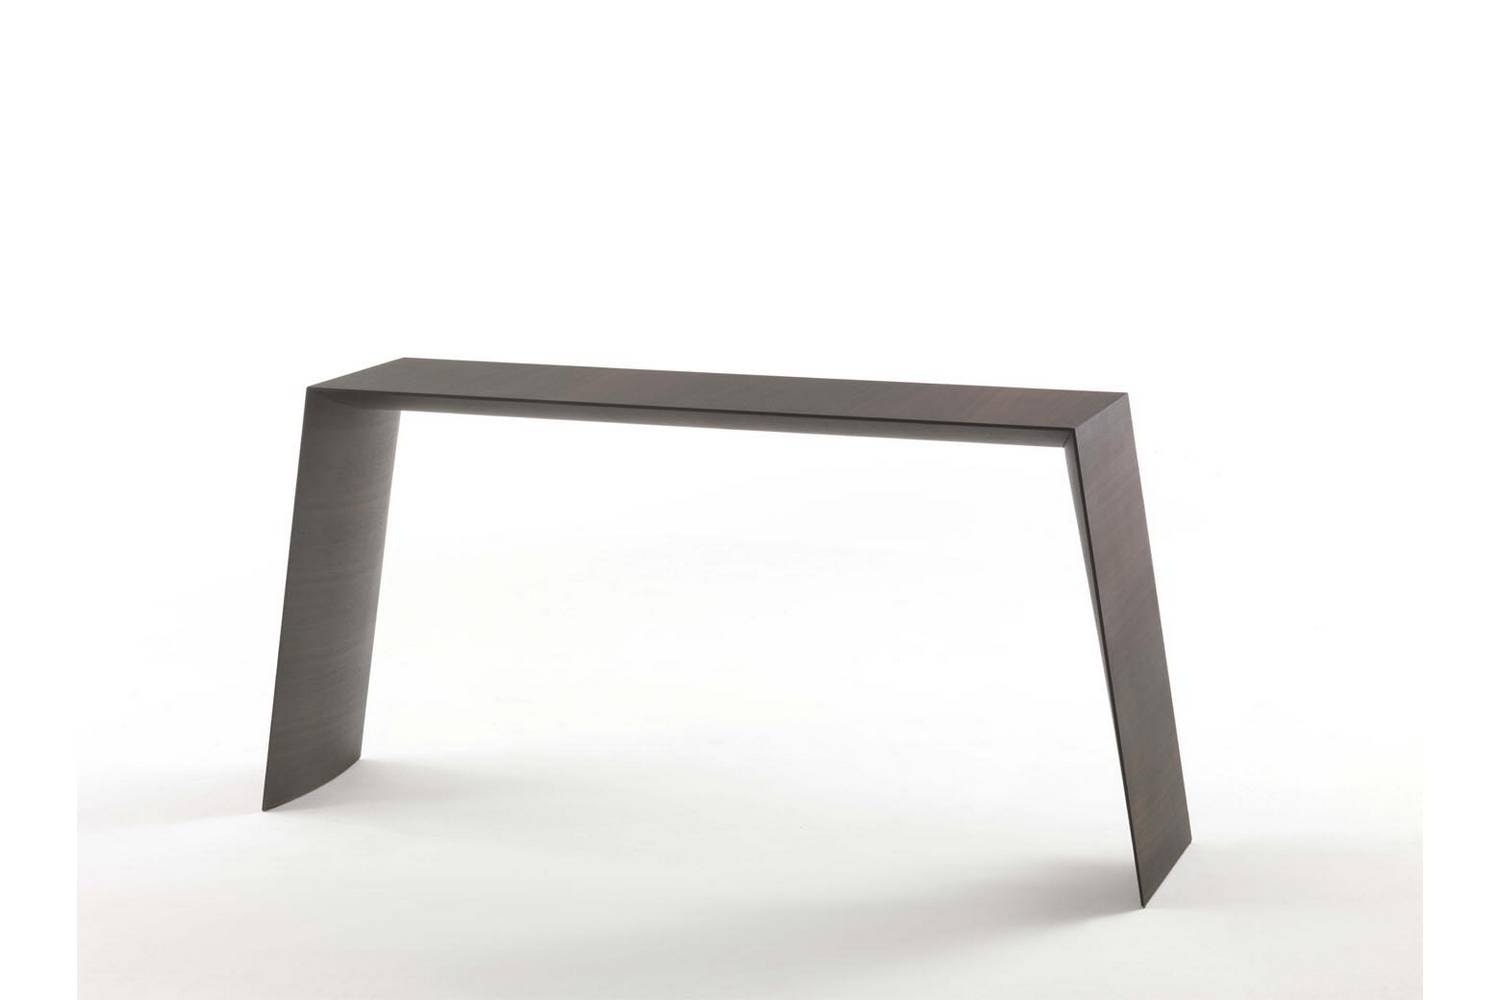 Asya Console Table by Marelli & Molteni for Porada